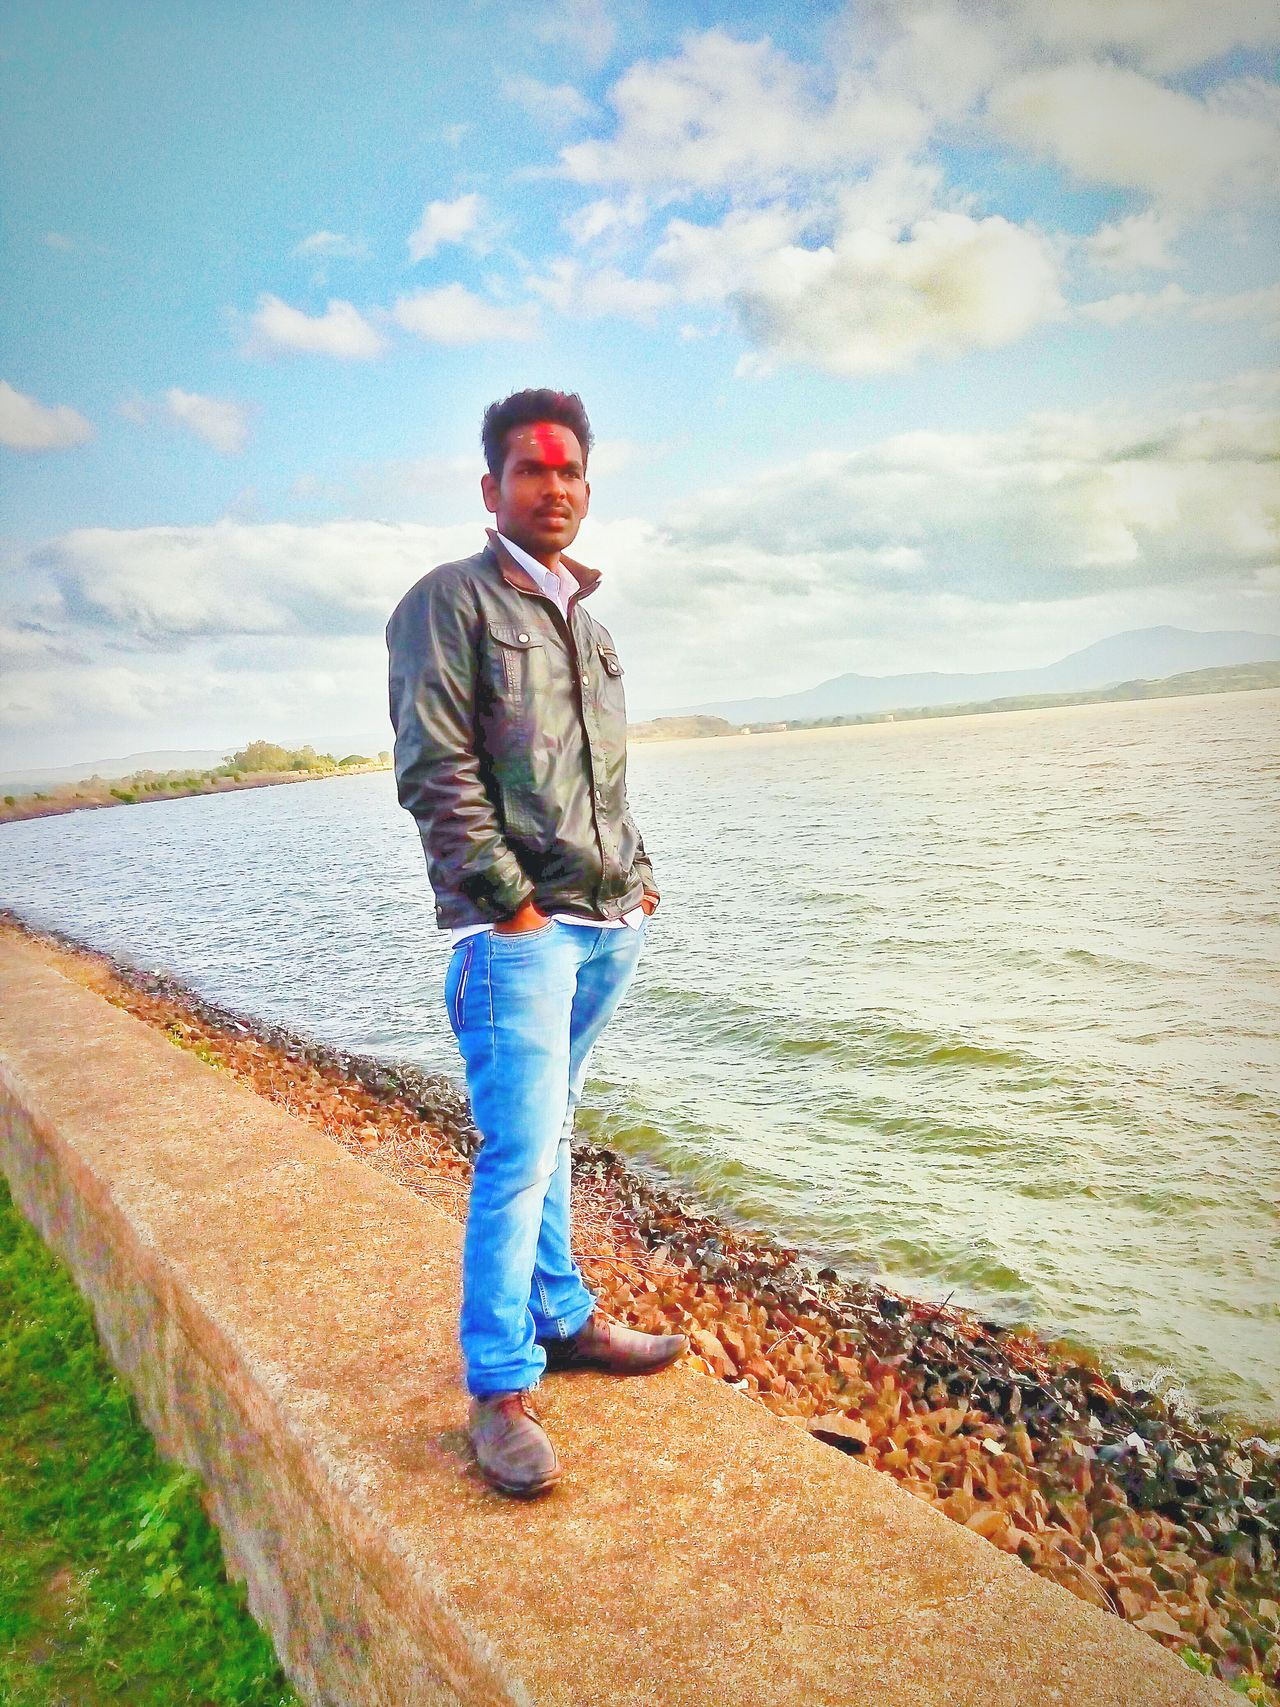 Veer dam Candycam Pune City Colour Of Life Noahcamera Barbiepink Puneclickarts Retroblack Punrdiaries Punekars Nature Mumbai Indian Pune Saswad Swapnilkale Candycamera Sreetphotography Hello World Photos HERO Taking Photos Enjoying Life Pune Cheese! Check This Out Relaxing IndiaNaad Dhol Taasha